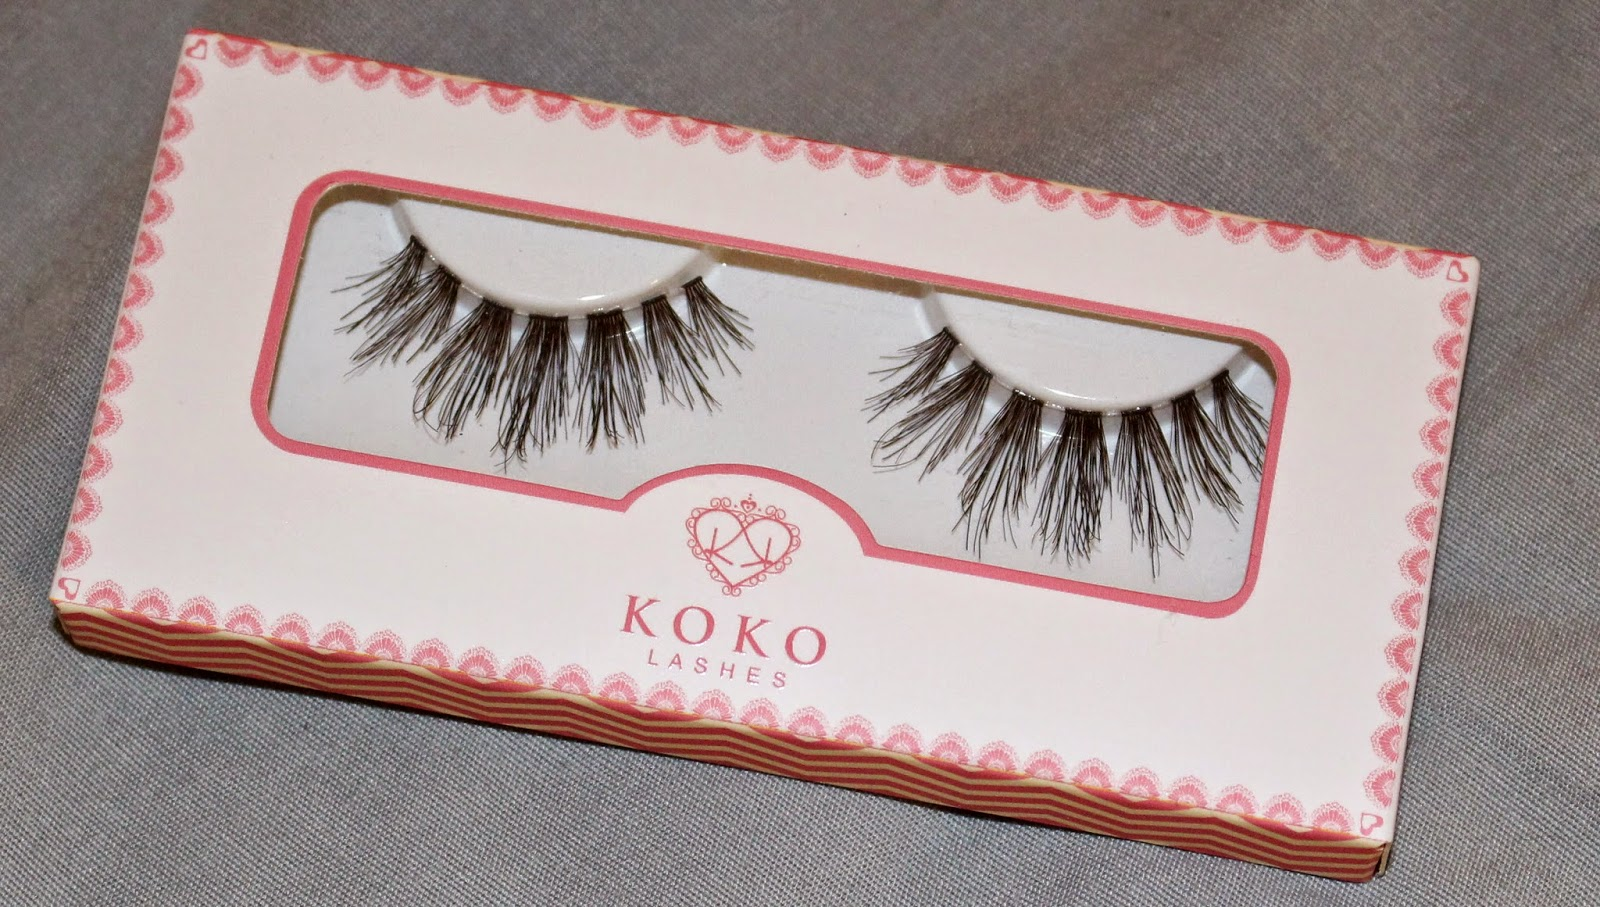 e170e4c2e1e ... Risque, Koko, Iris, Bella, and Goddess style. The packaging is thin,  non-bulky, and quite cute. The name of the lash on the back of the box and  the tray ...